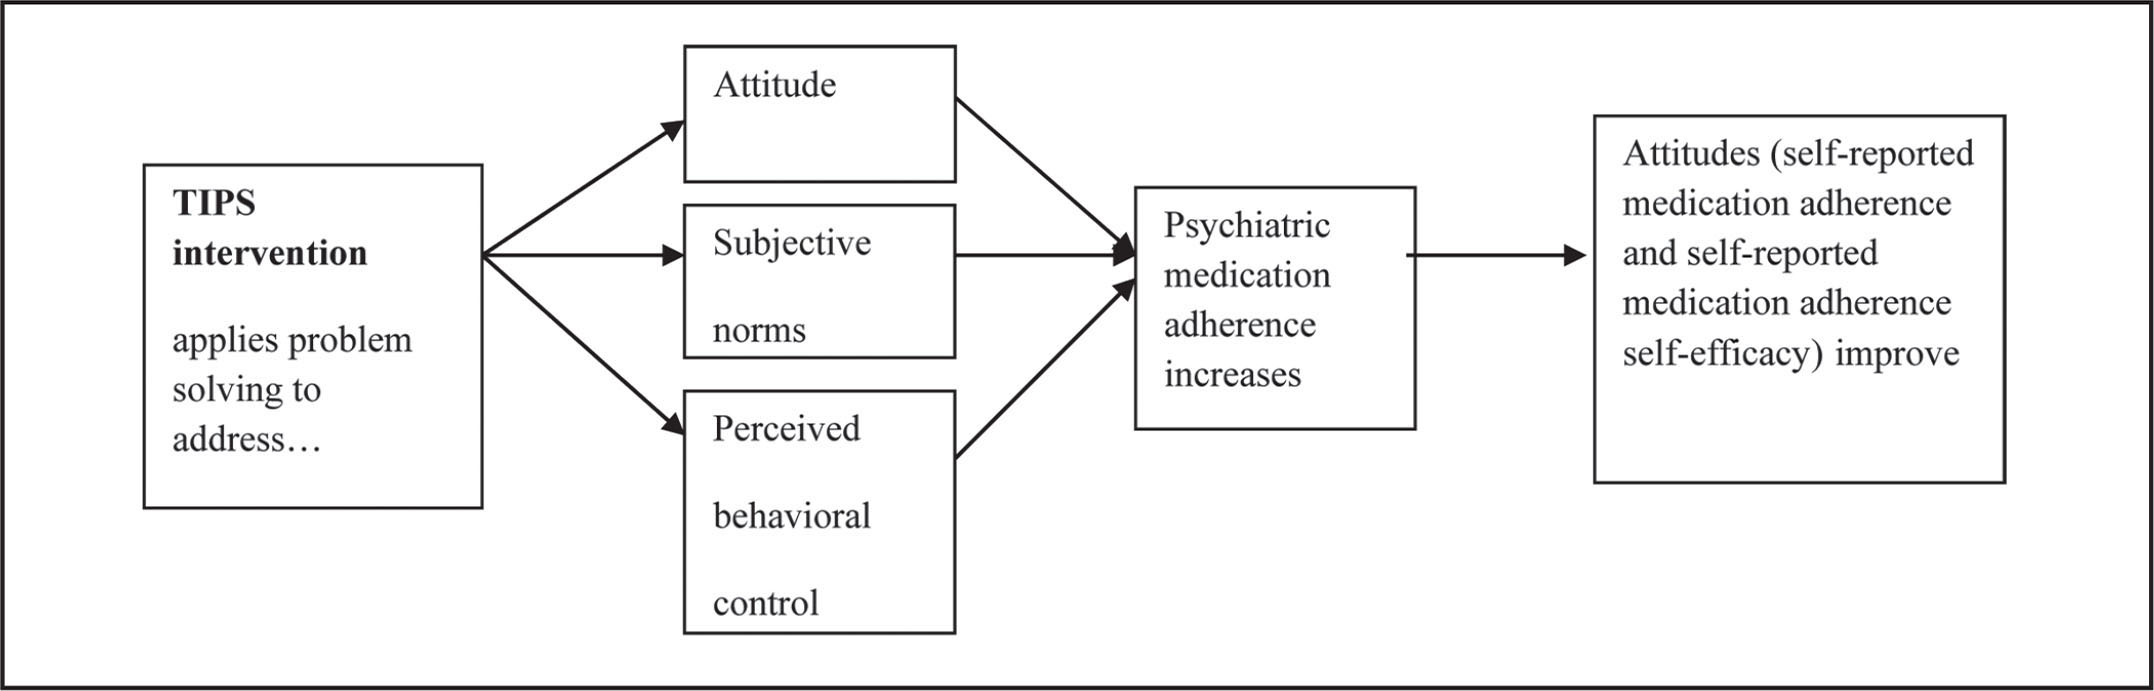 the effect of telephone based interventions The effect of telephone-based interpersonal psychotherapy for the treatment of postpartum depression: study protocol for a randomized controlled trial.